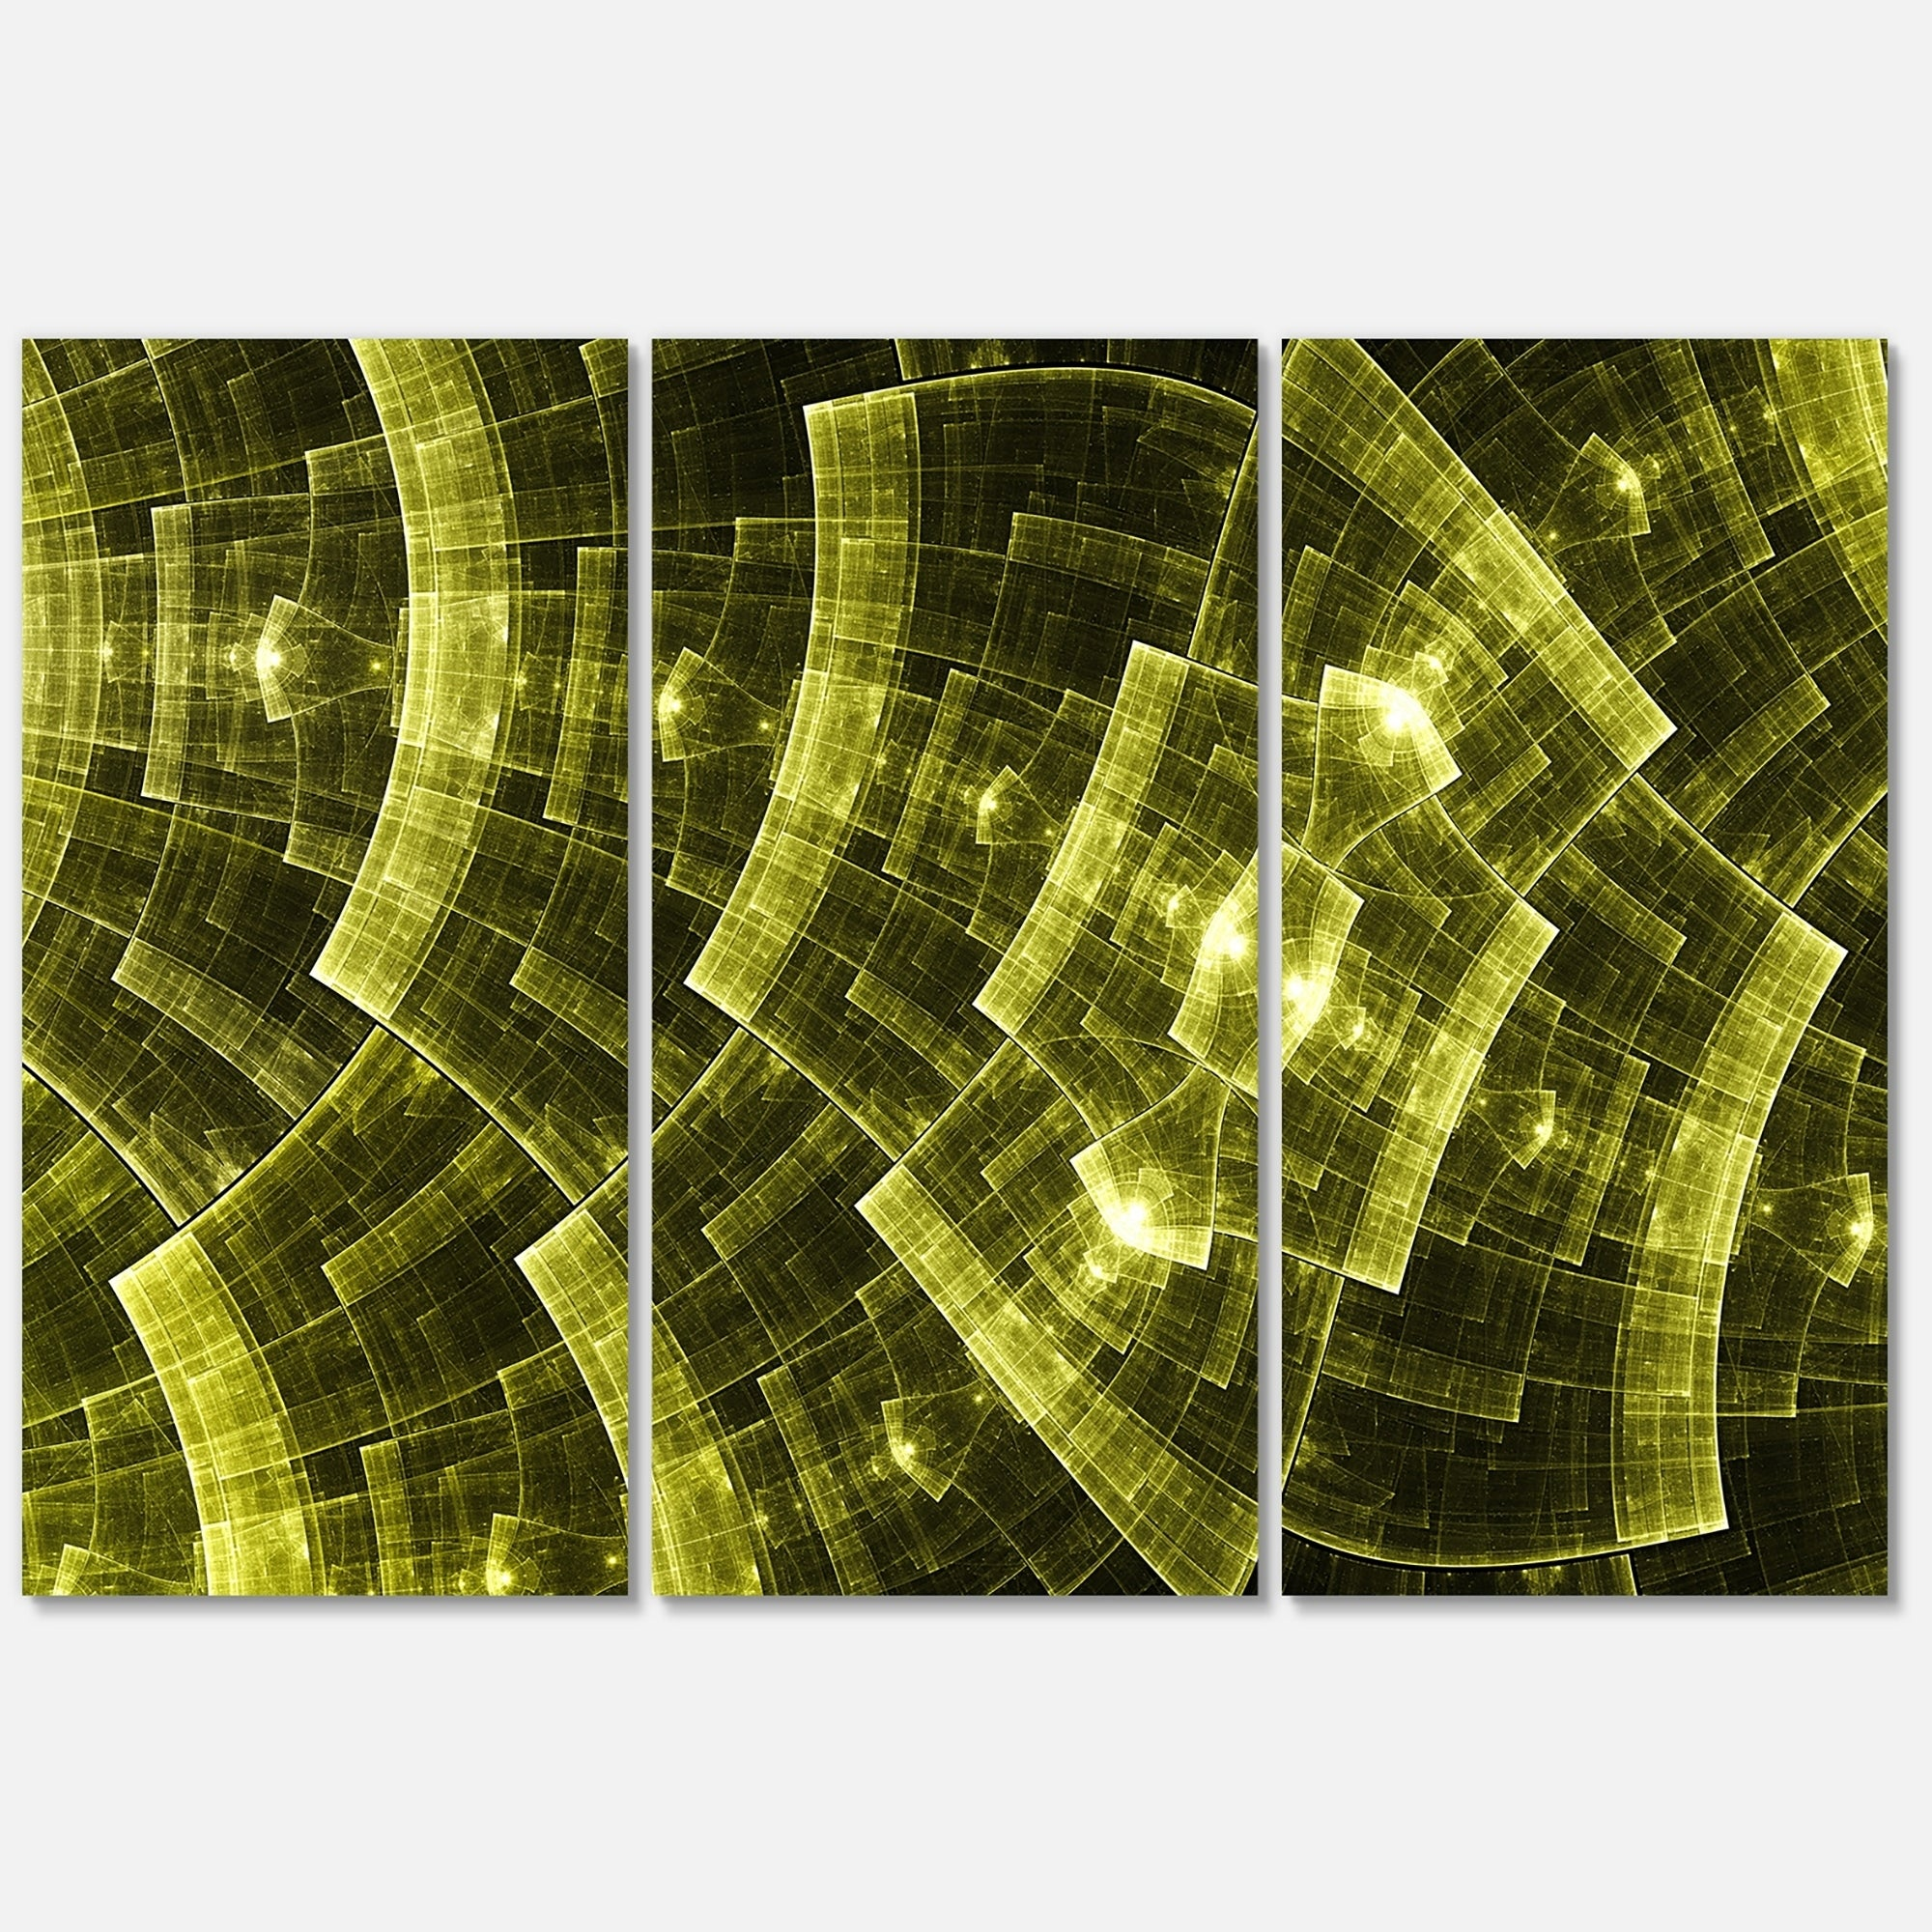 Golden Psychedelic Fractal Metal Grid Art - Abstract Glossy Metal ...